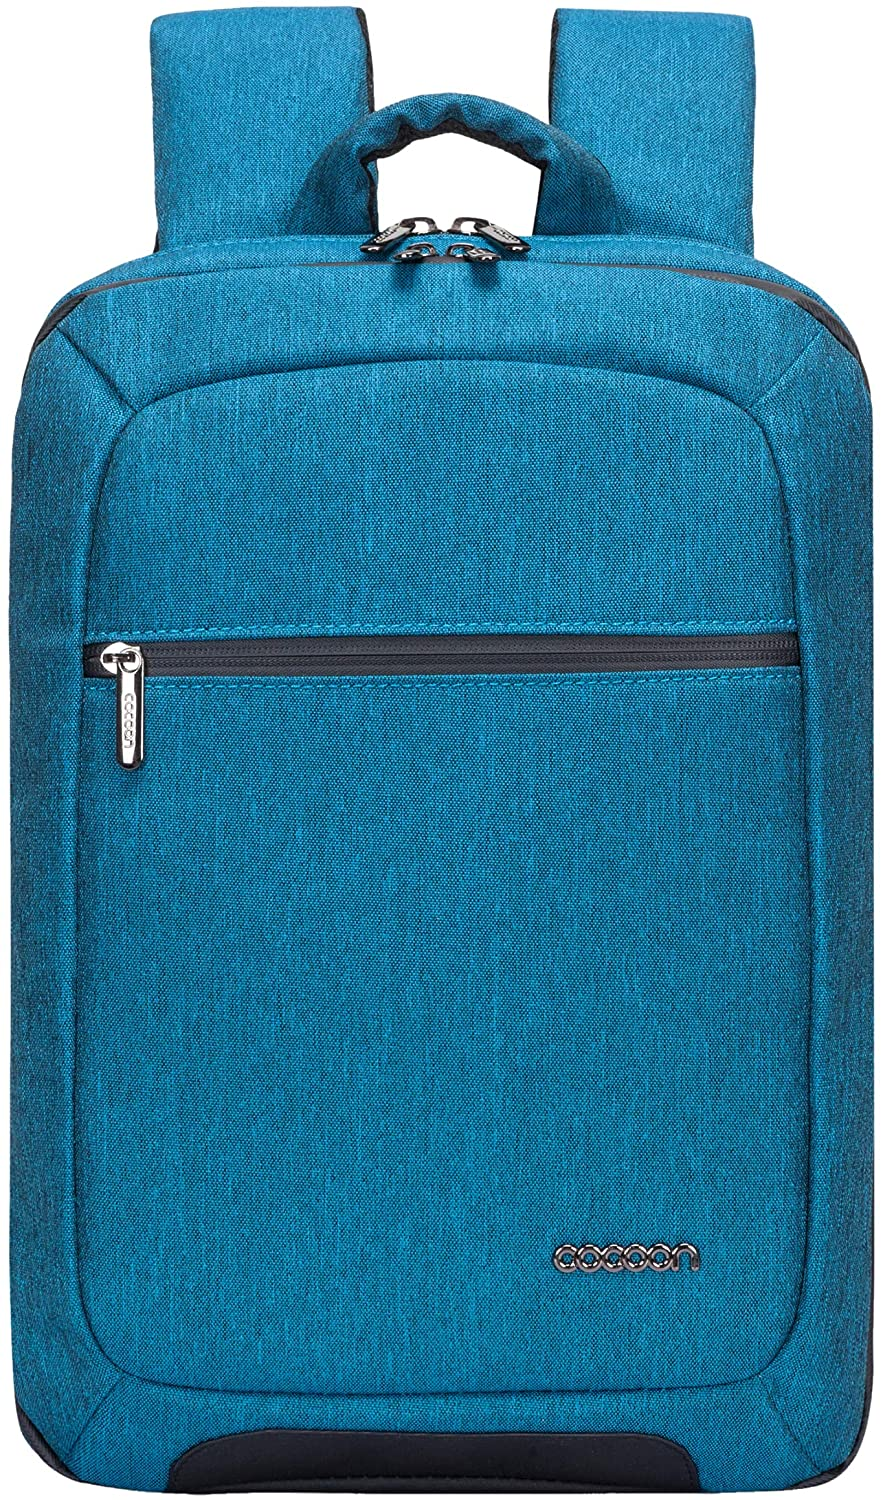 """Cocoon MCP3401TL Slim 15"""" Backpack with Built-in Grid-IT! Accessory Organizer (Teal/Blue)"""